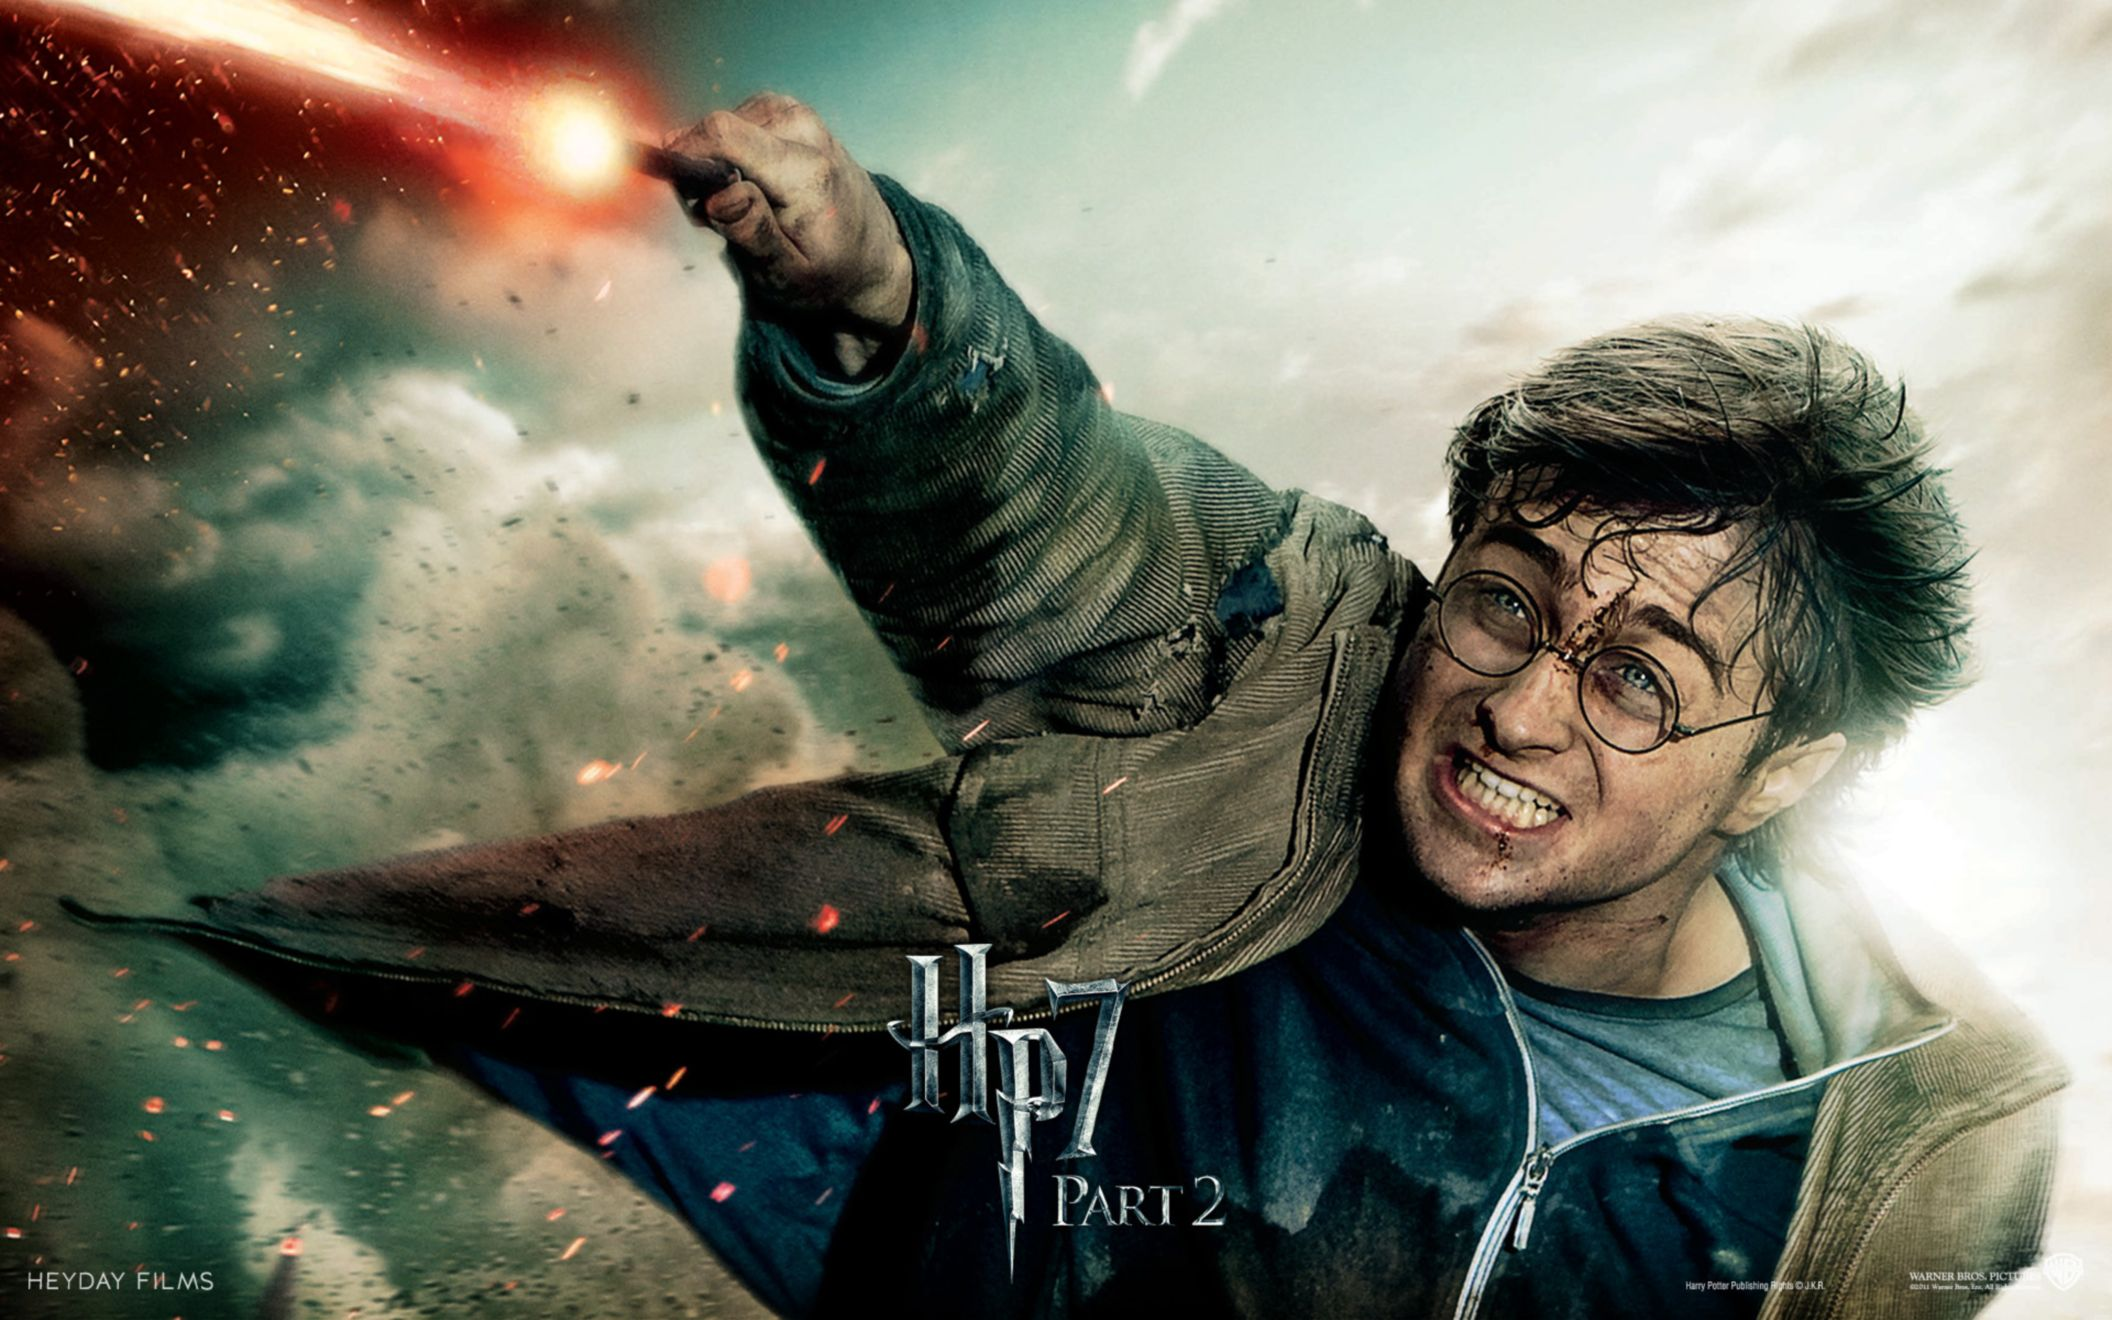 Download free HD Harry Potter in Deathly Hallows Part 2 Wide Wallpaper, image